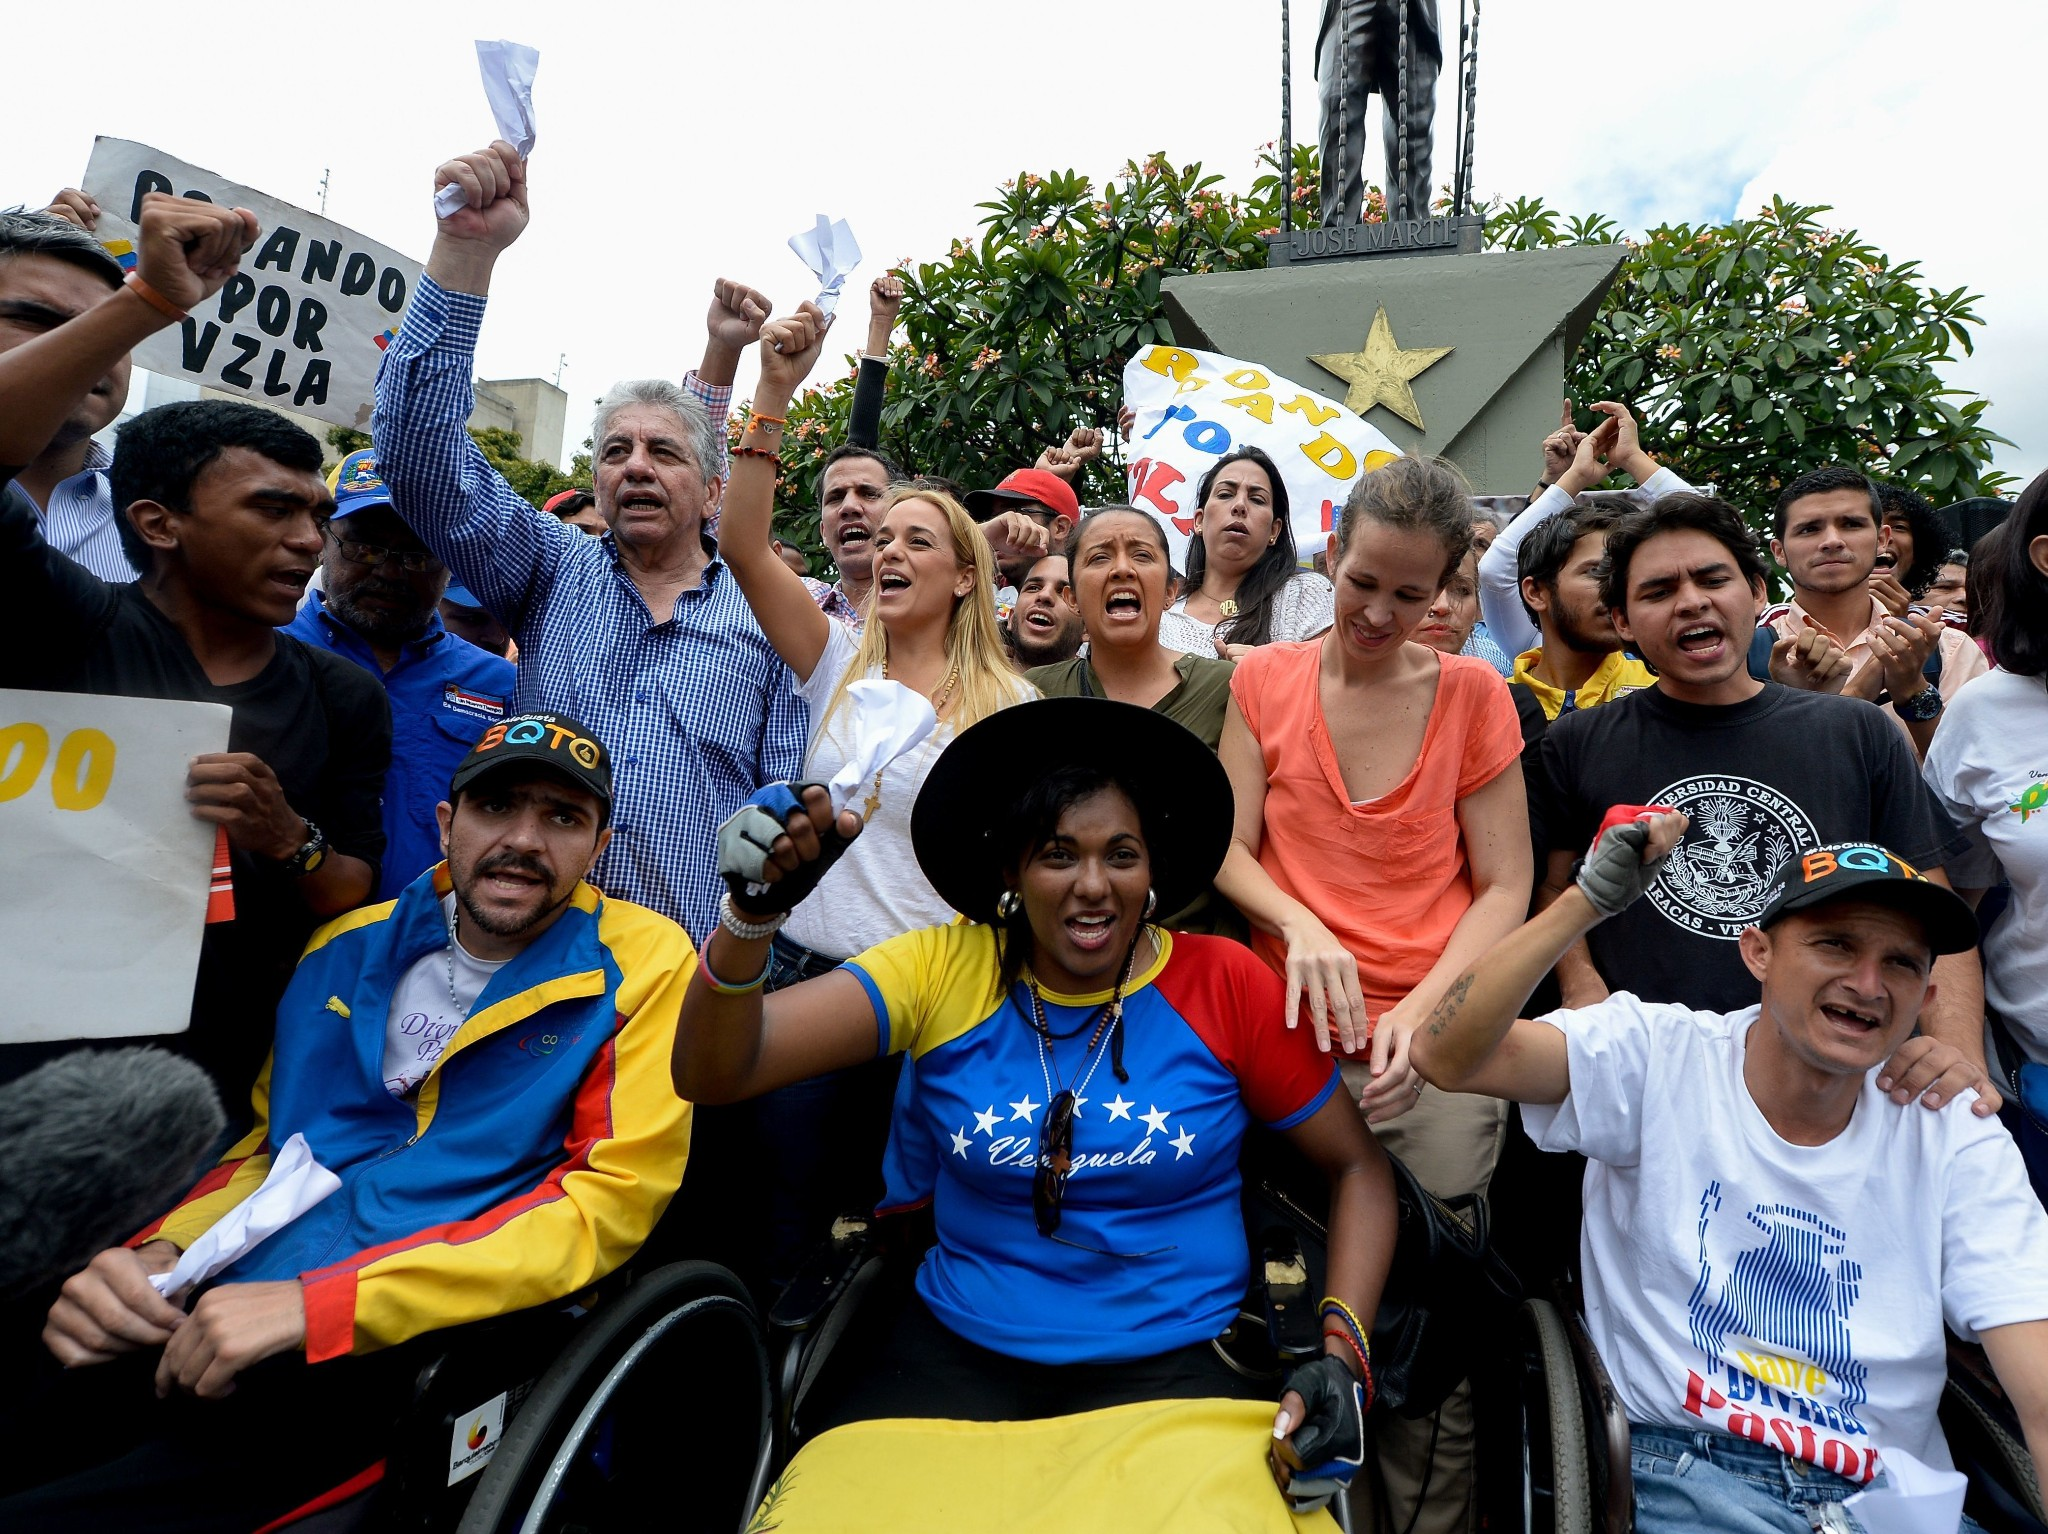 Ahead Of Major Protest, Venezuela Kicked Me (And Other Journalists) Out